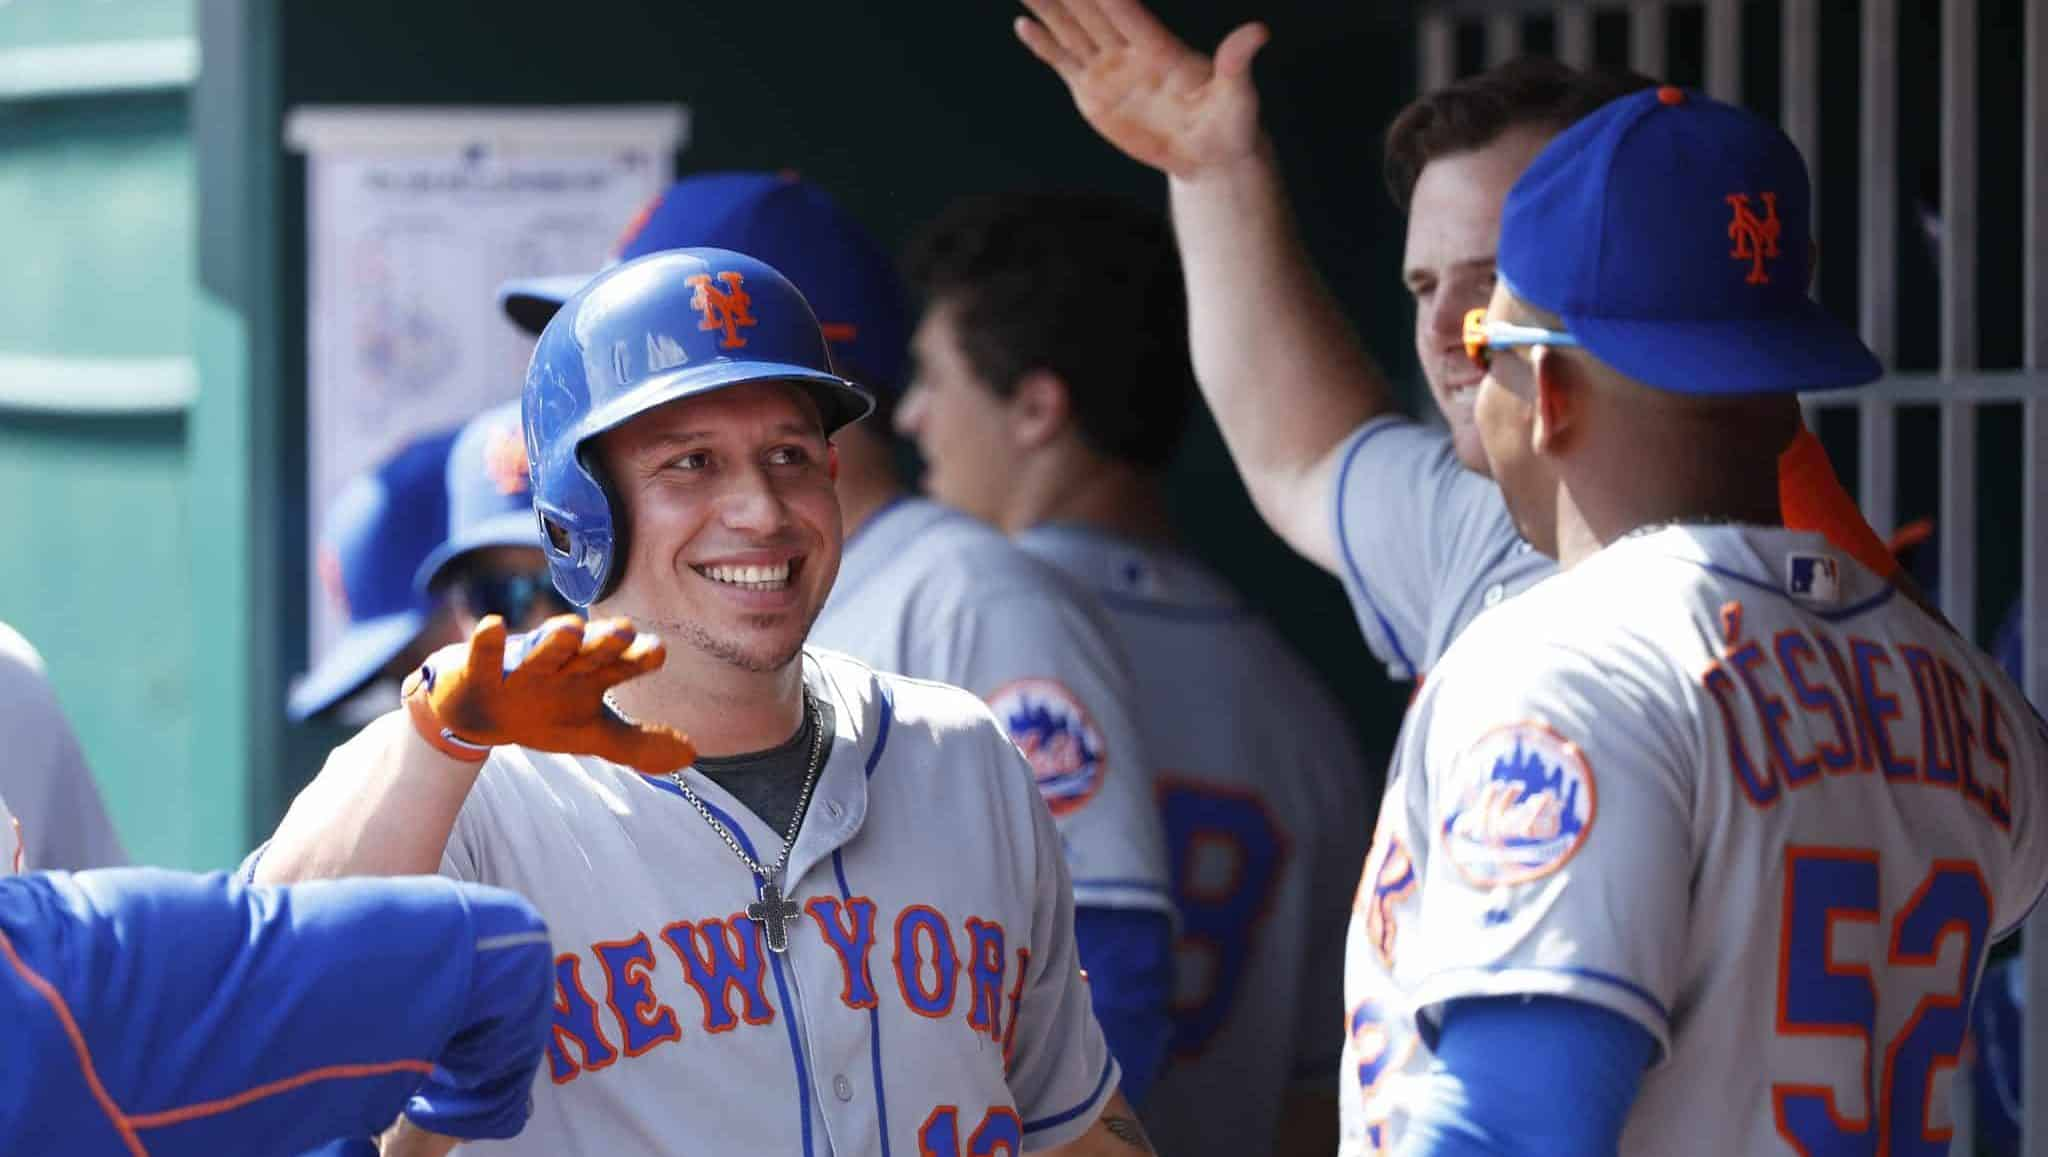 CINCINNATI, OH - SEPTEMBER 05: Asdrubal Cabrera #13 of the New York Mets celebrates after a pinch hit single to drive in a run in the seventh inning against the Cincinnati Reds at Great American Ball Park on September 5, 2016 in Cincinnati, Ohio. The Mets defeated the Reds 5-0.